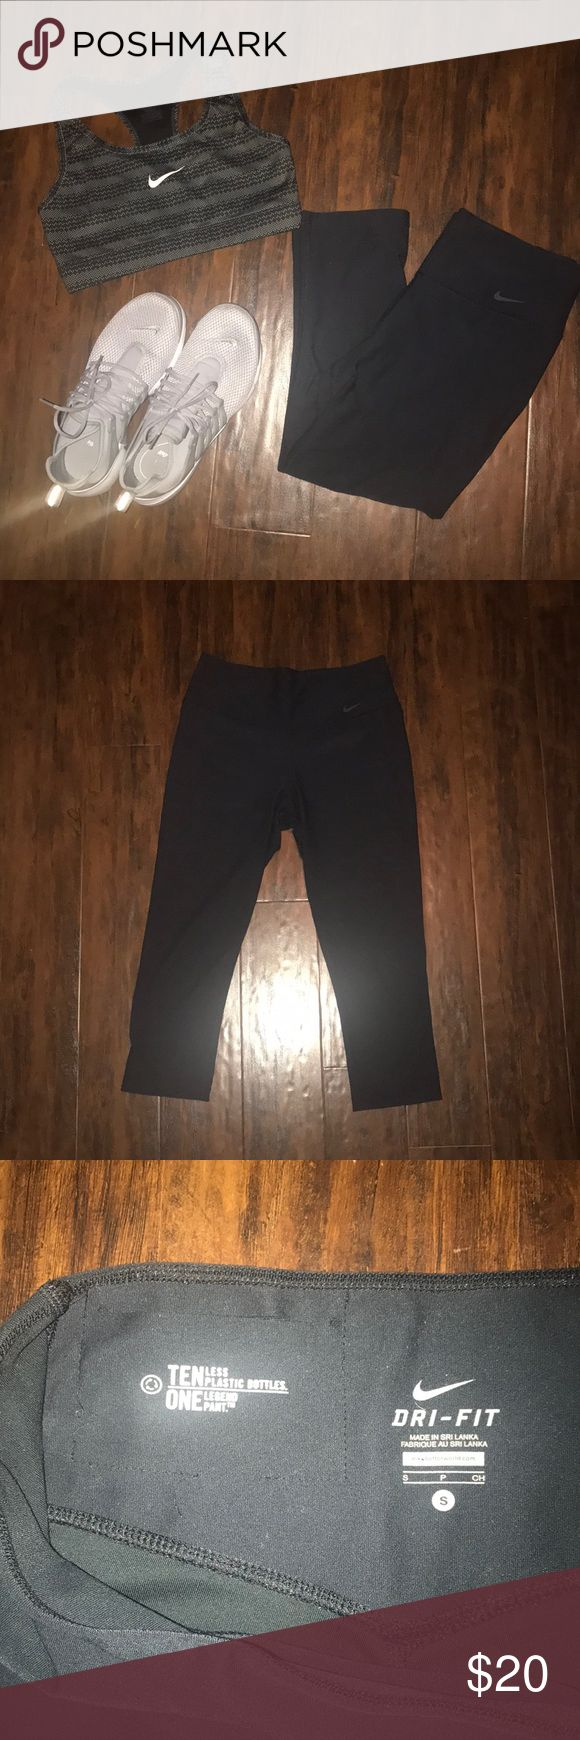 BOGO 1/2 OFF Cropped Nike leggings DRI-FIT cropped black nike leggings, size small, barely worn, great condition ✨make an offer!✨ feel free to comment if you have any questions 😊‼️ALL LISTINGS BUY ONE GET ONE HALF OFF W/ DISCOUNTED SHIPPING❗️(of the two items, the less expensive item will be half off) just make a bundle and I'll re-price‼️ Nike Pants Leggings